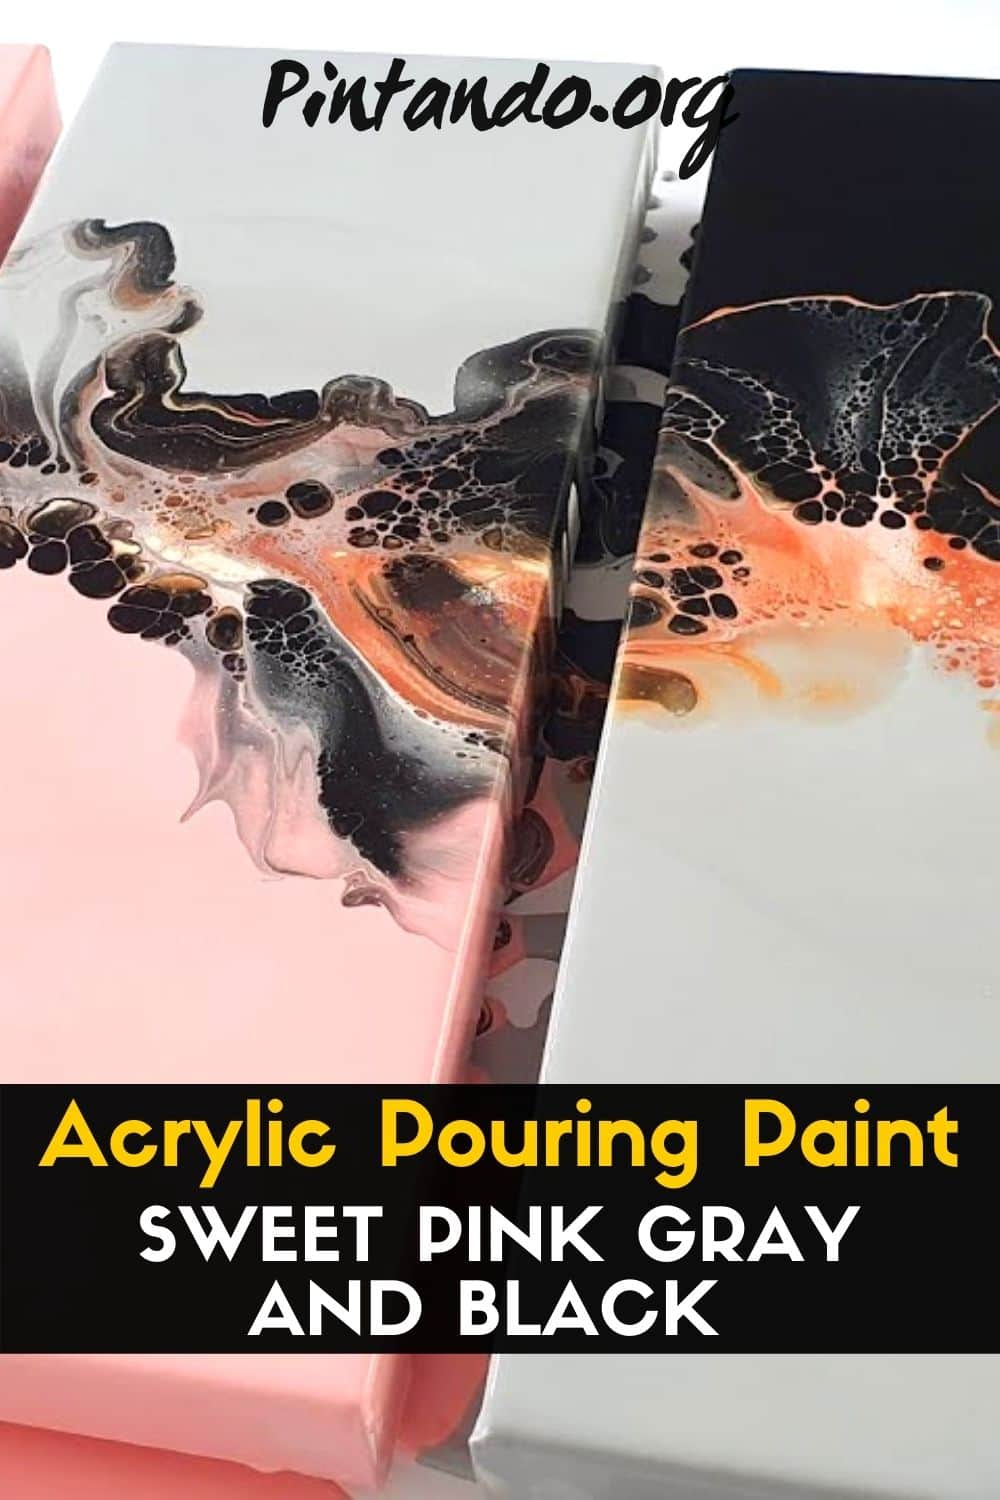 Acrylic Pouring Paint with SWEET PINK !_ GRAY AND BLACK -min